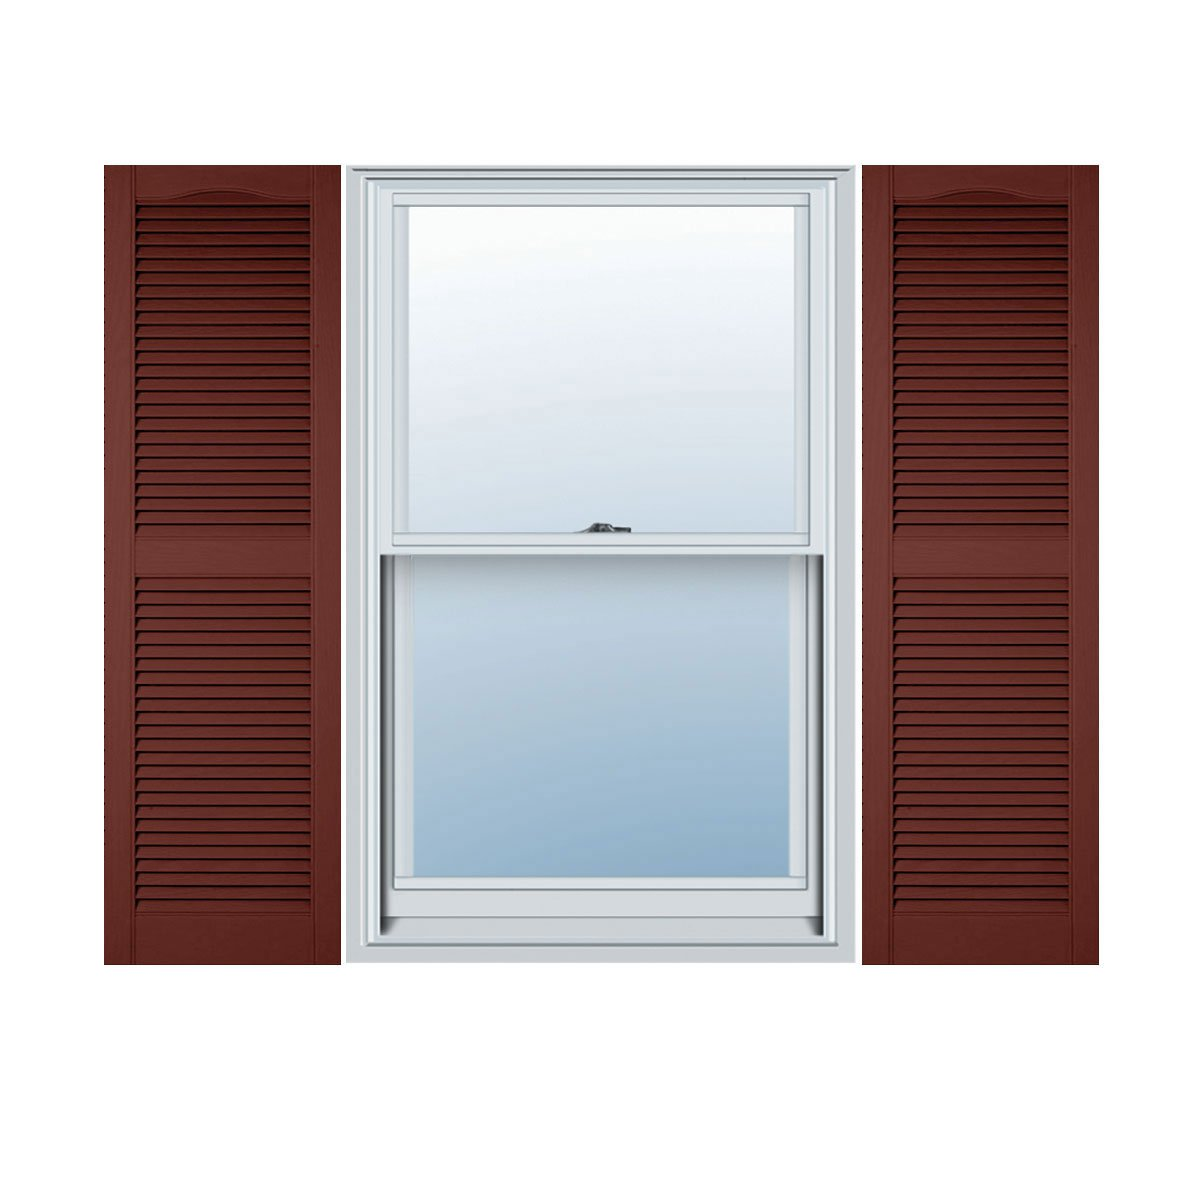 12''W x 60''H Standard Size Cathedral Open Louver Shutter, w/Installation Shutter-Lok's, 027 - Burgundy Red